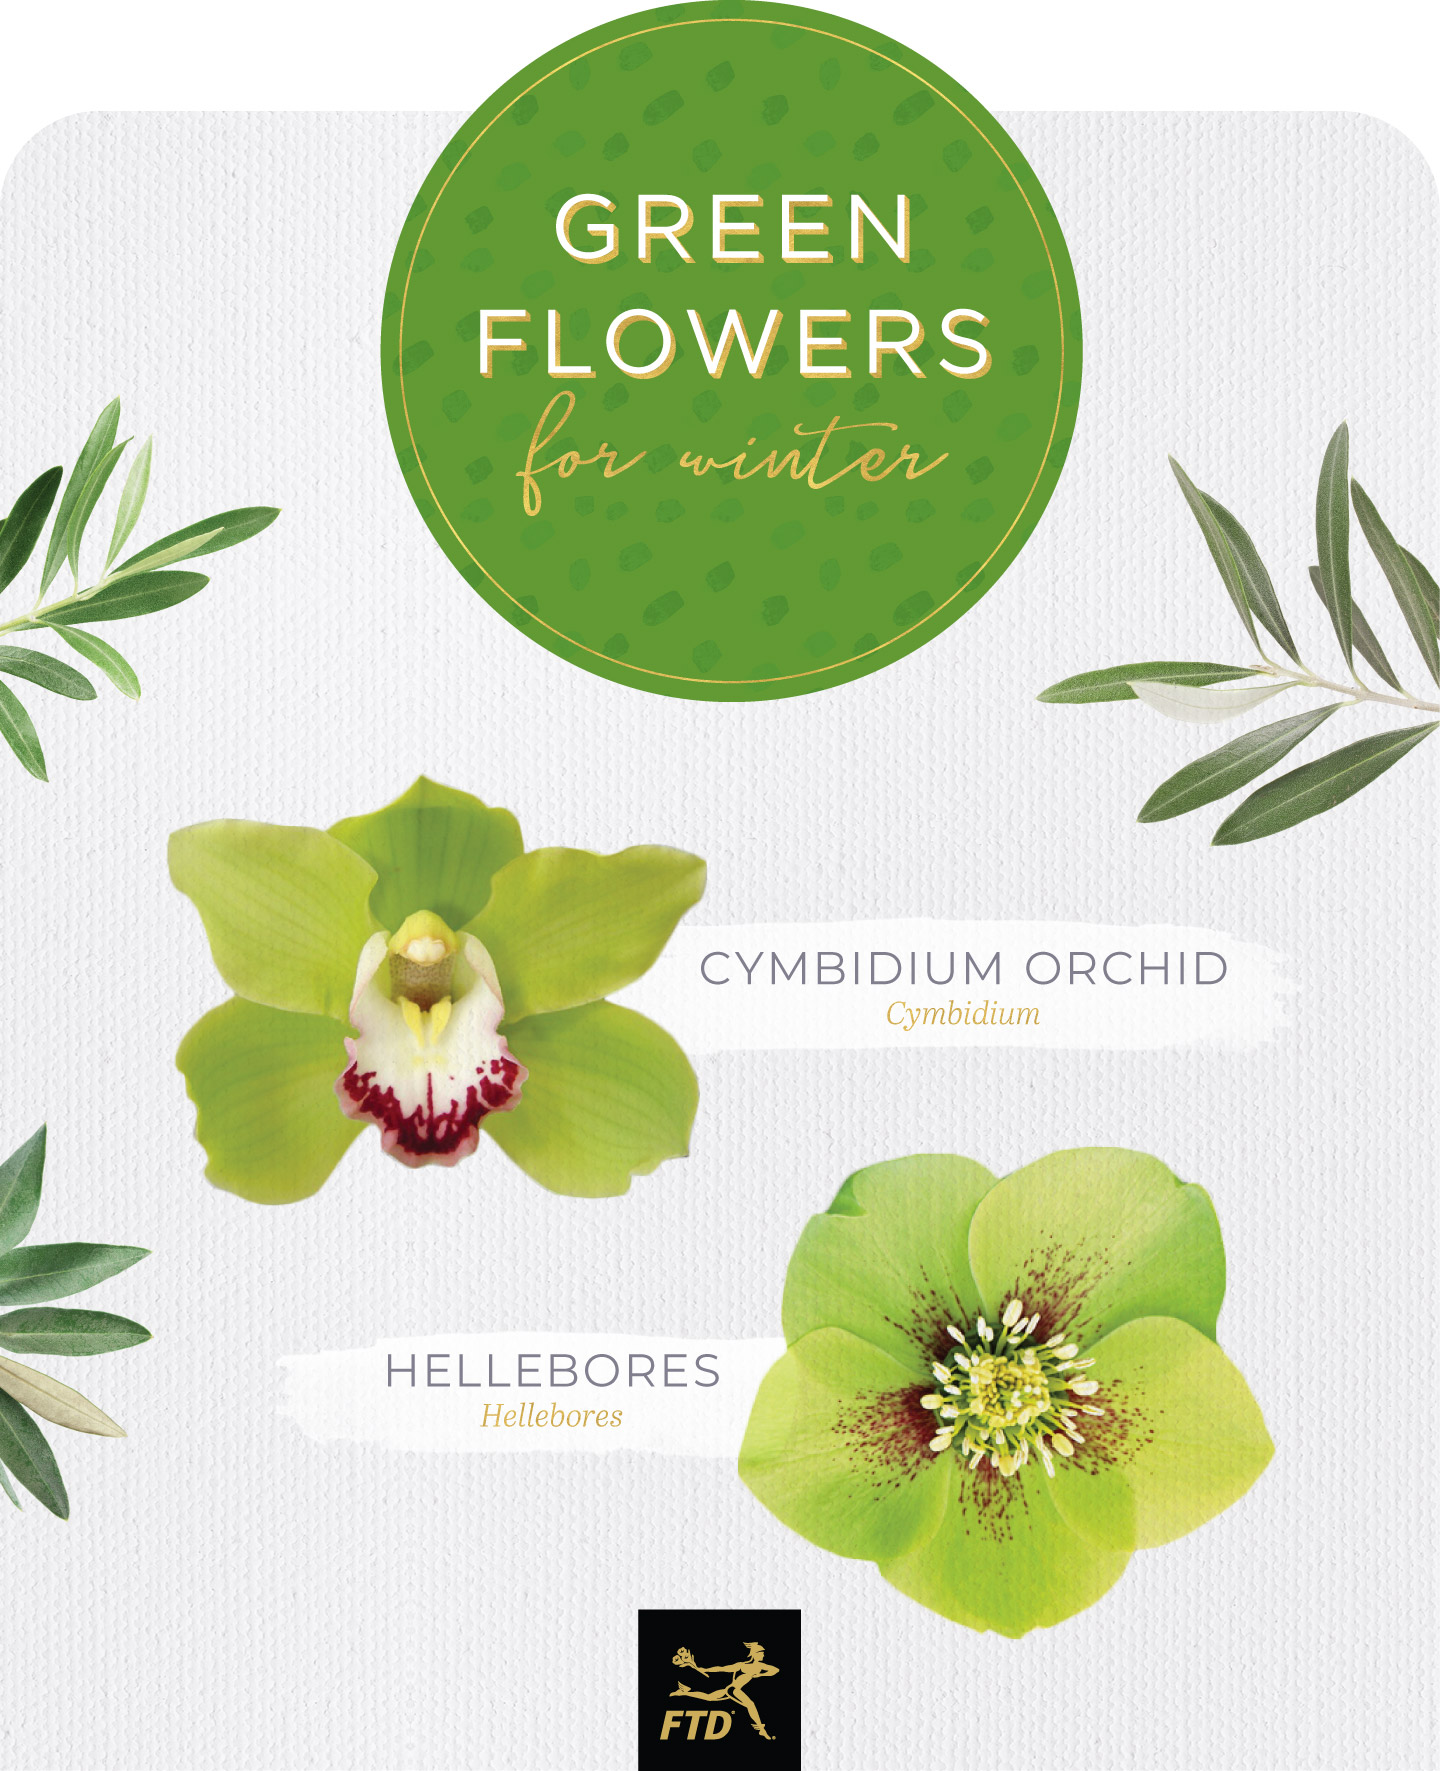 Types of green flowers winter